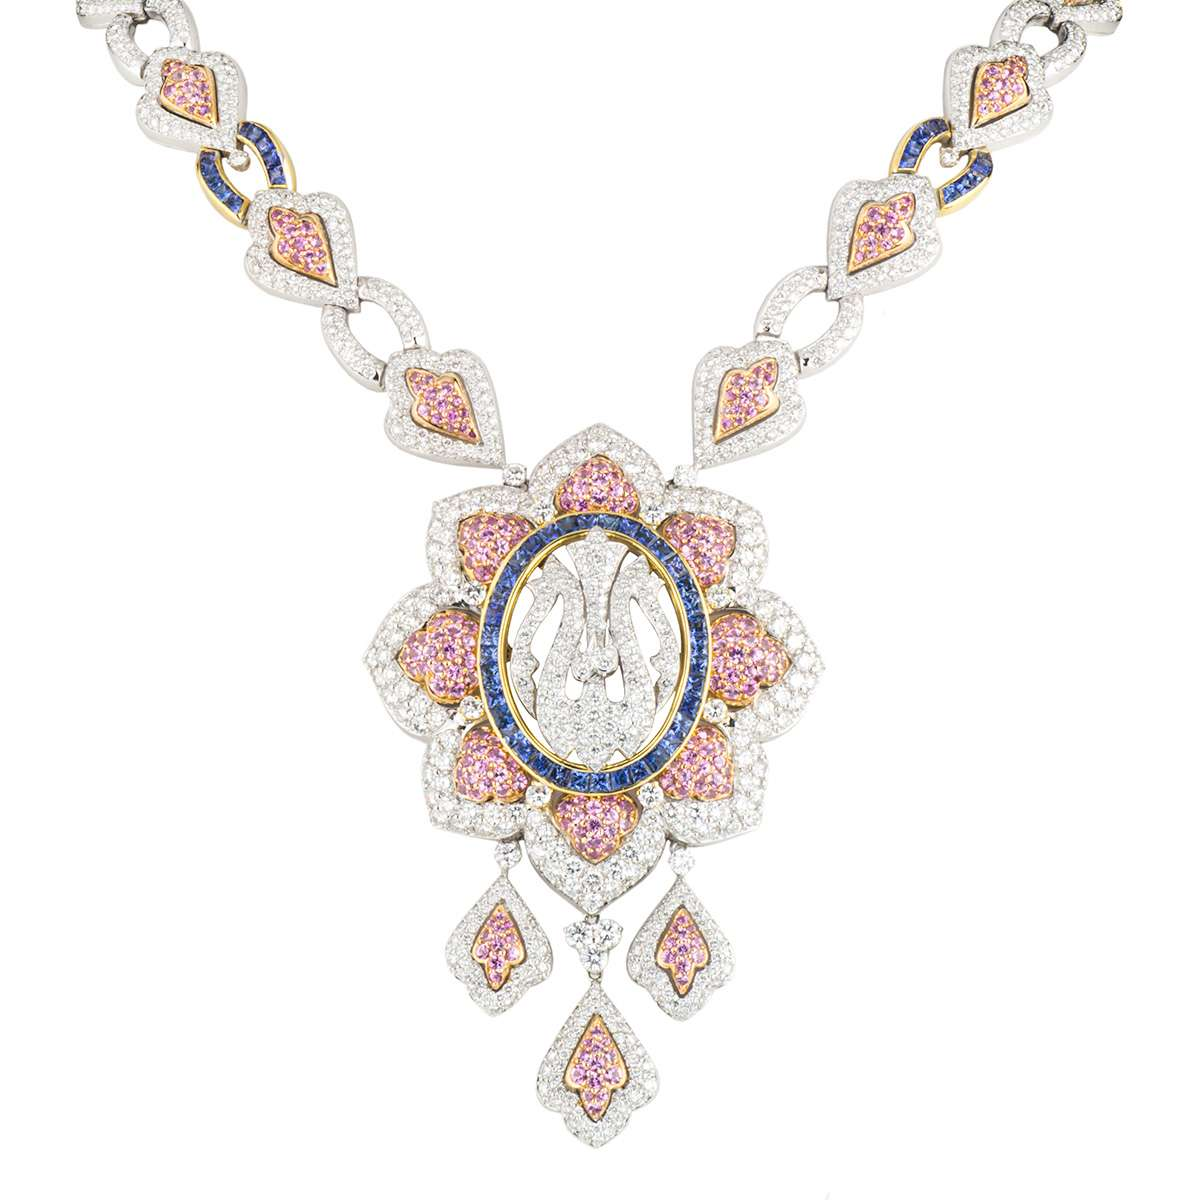 White Gold Diamond, Sapphire and Topaz Allah Necklace